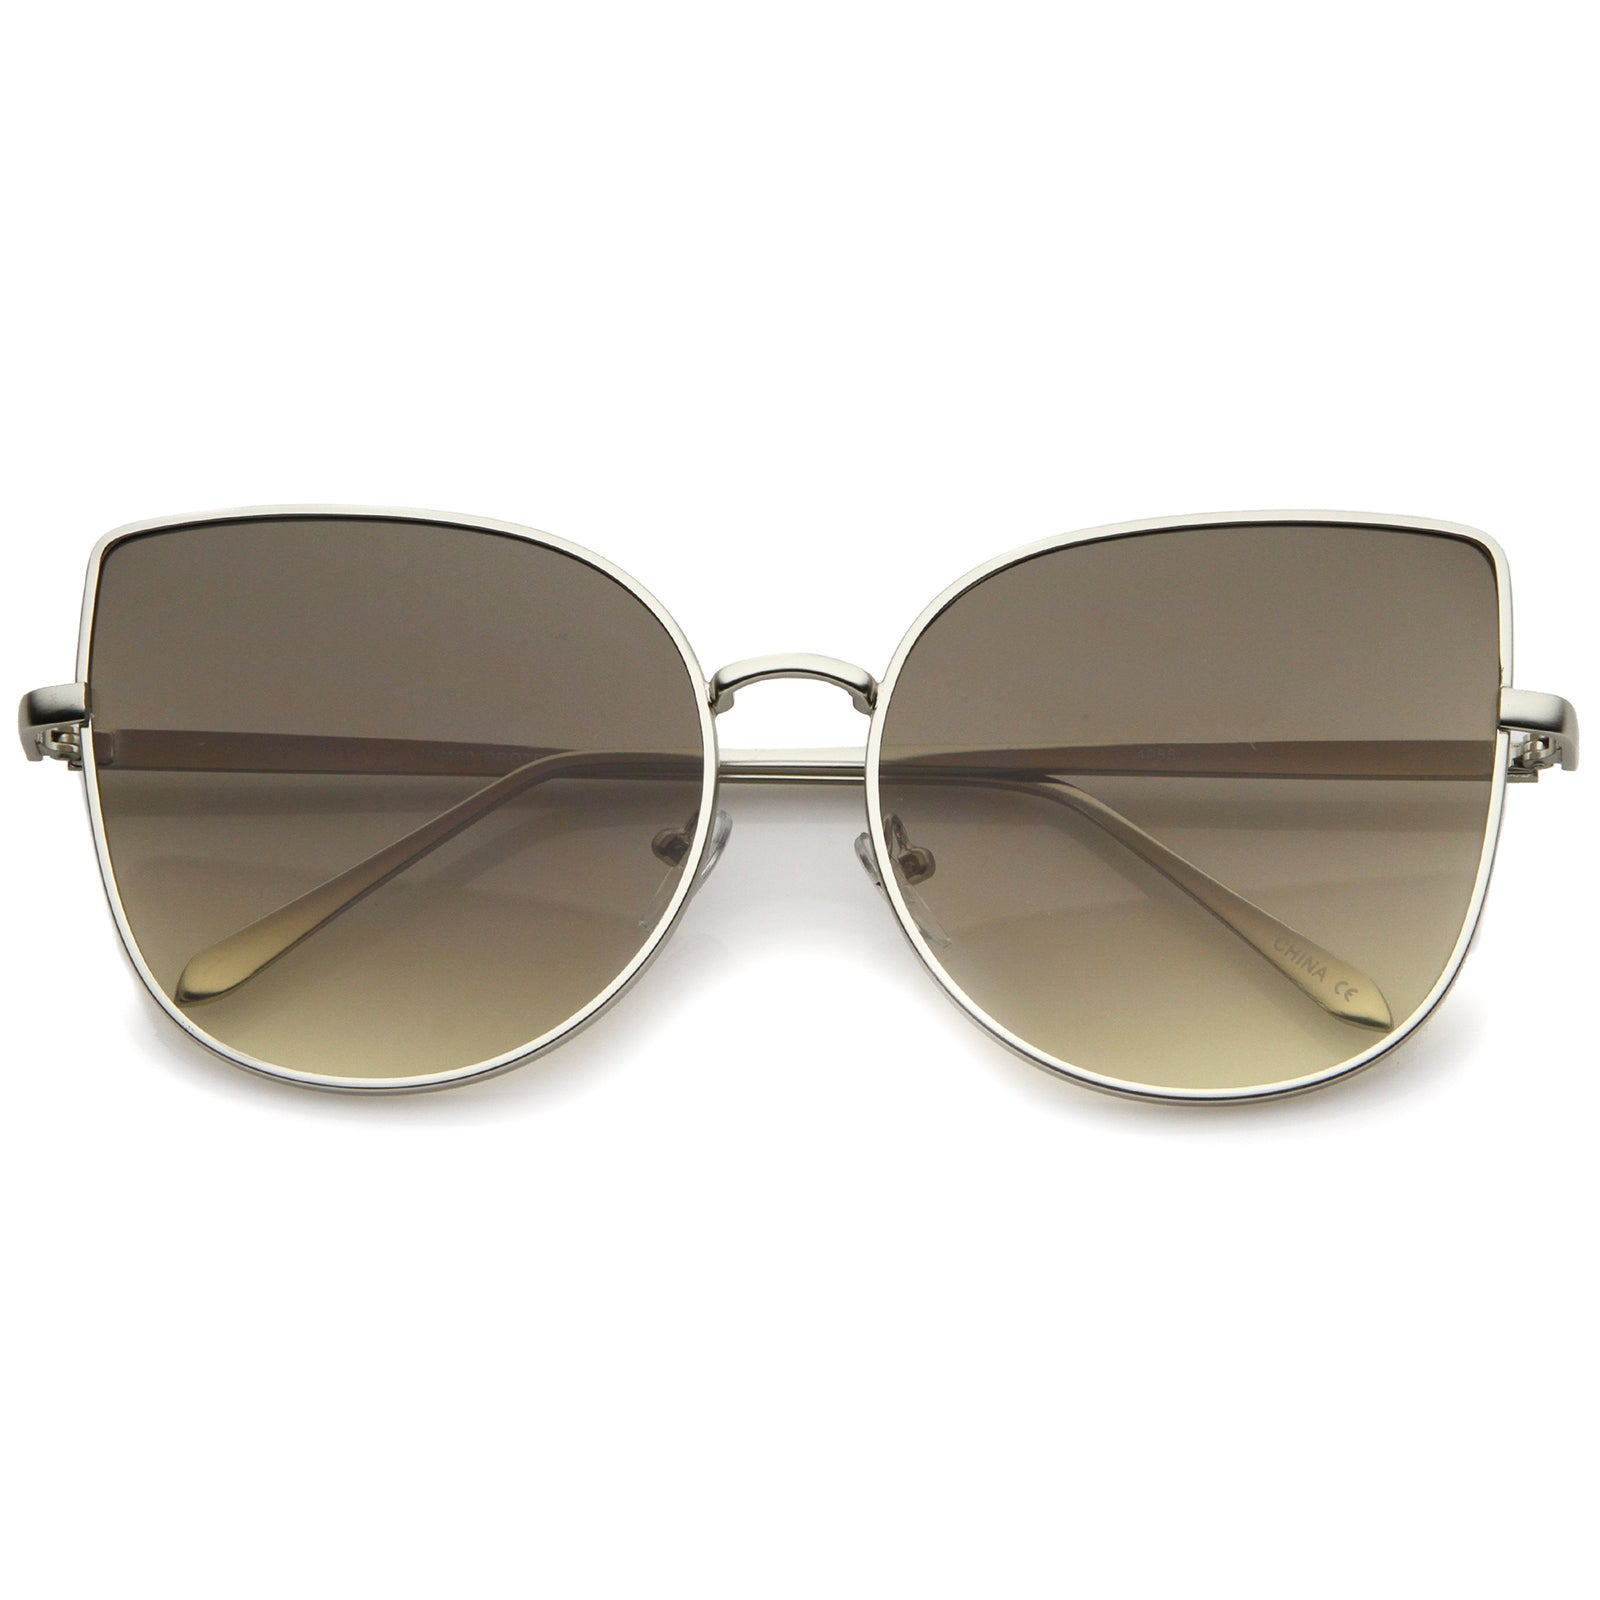 Women's Oversize Slim Metal Frame Gradient Flat Lens Cat Eye Sunglasses 58mm - sunglass.la - 5